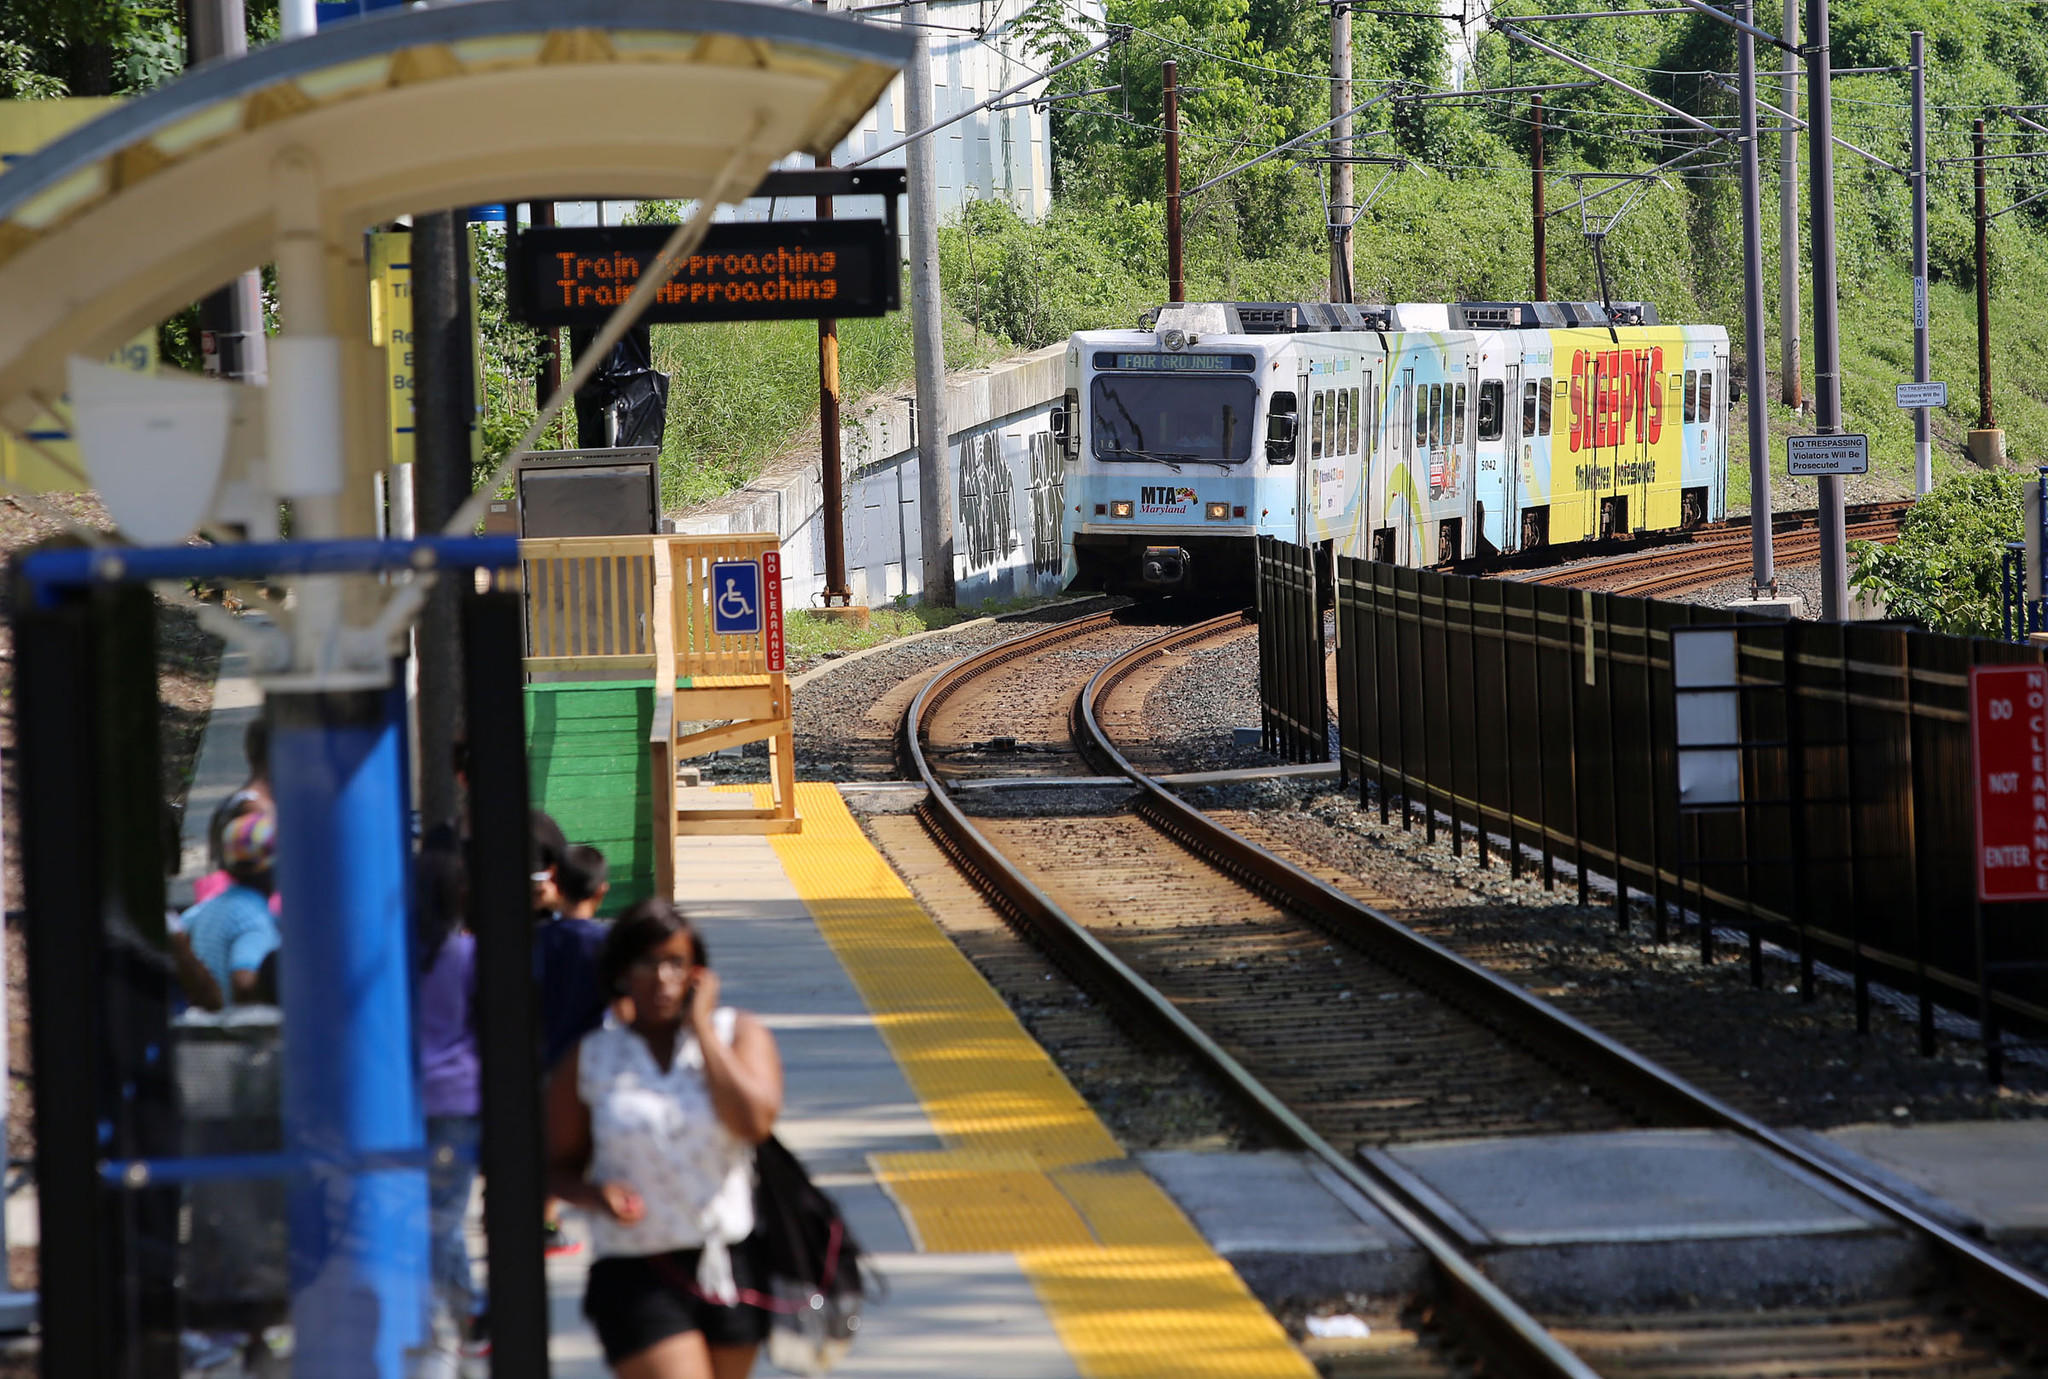 Baltimore, MD 6/18/14-An MTA light rail approaches the station at the Cold Spring Lane light rail stop Wednesday afternoon. Both northbound and southbound trains alternated running on a single track due to one track being closed for erosion repair. Al Drago/Baltimore Sun--#